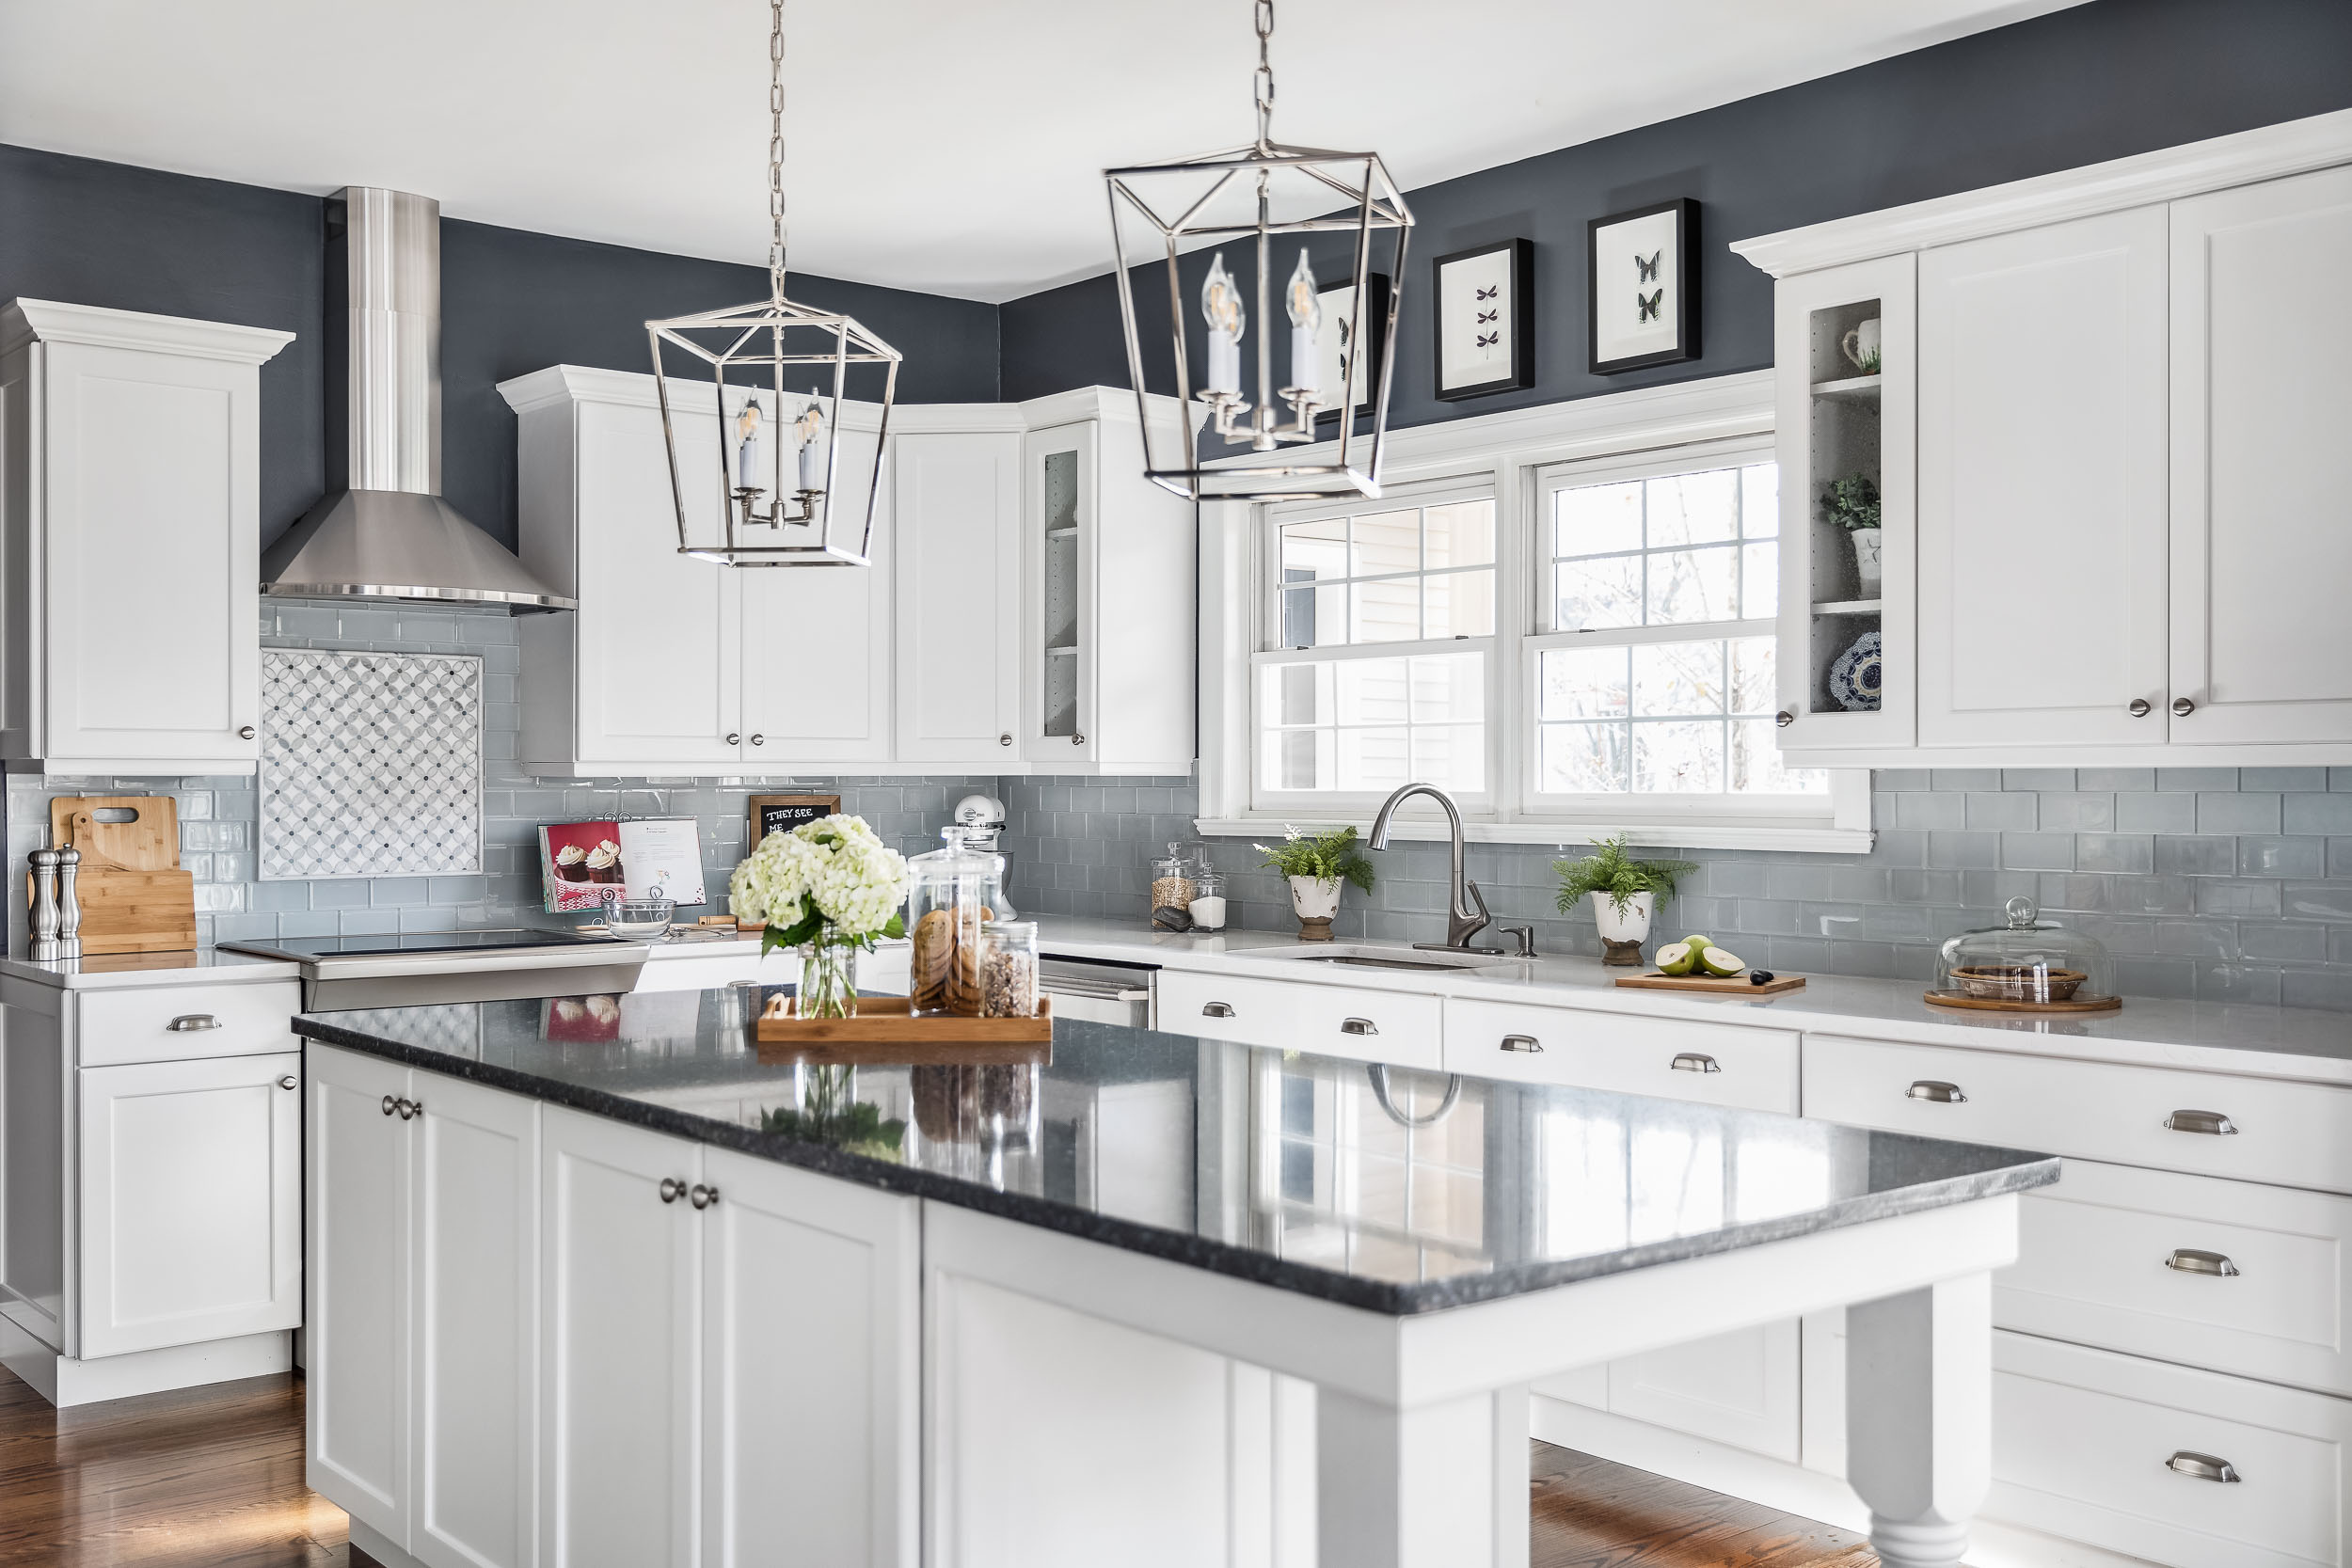 Architectural interiors photography of a renovated kitchen in Nyack, NY